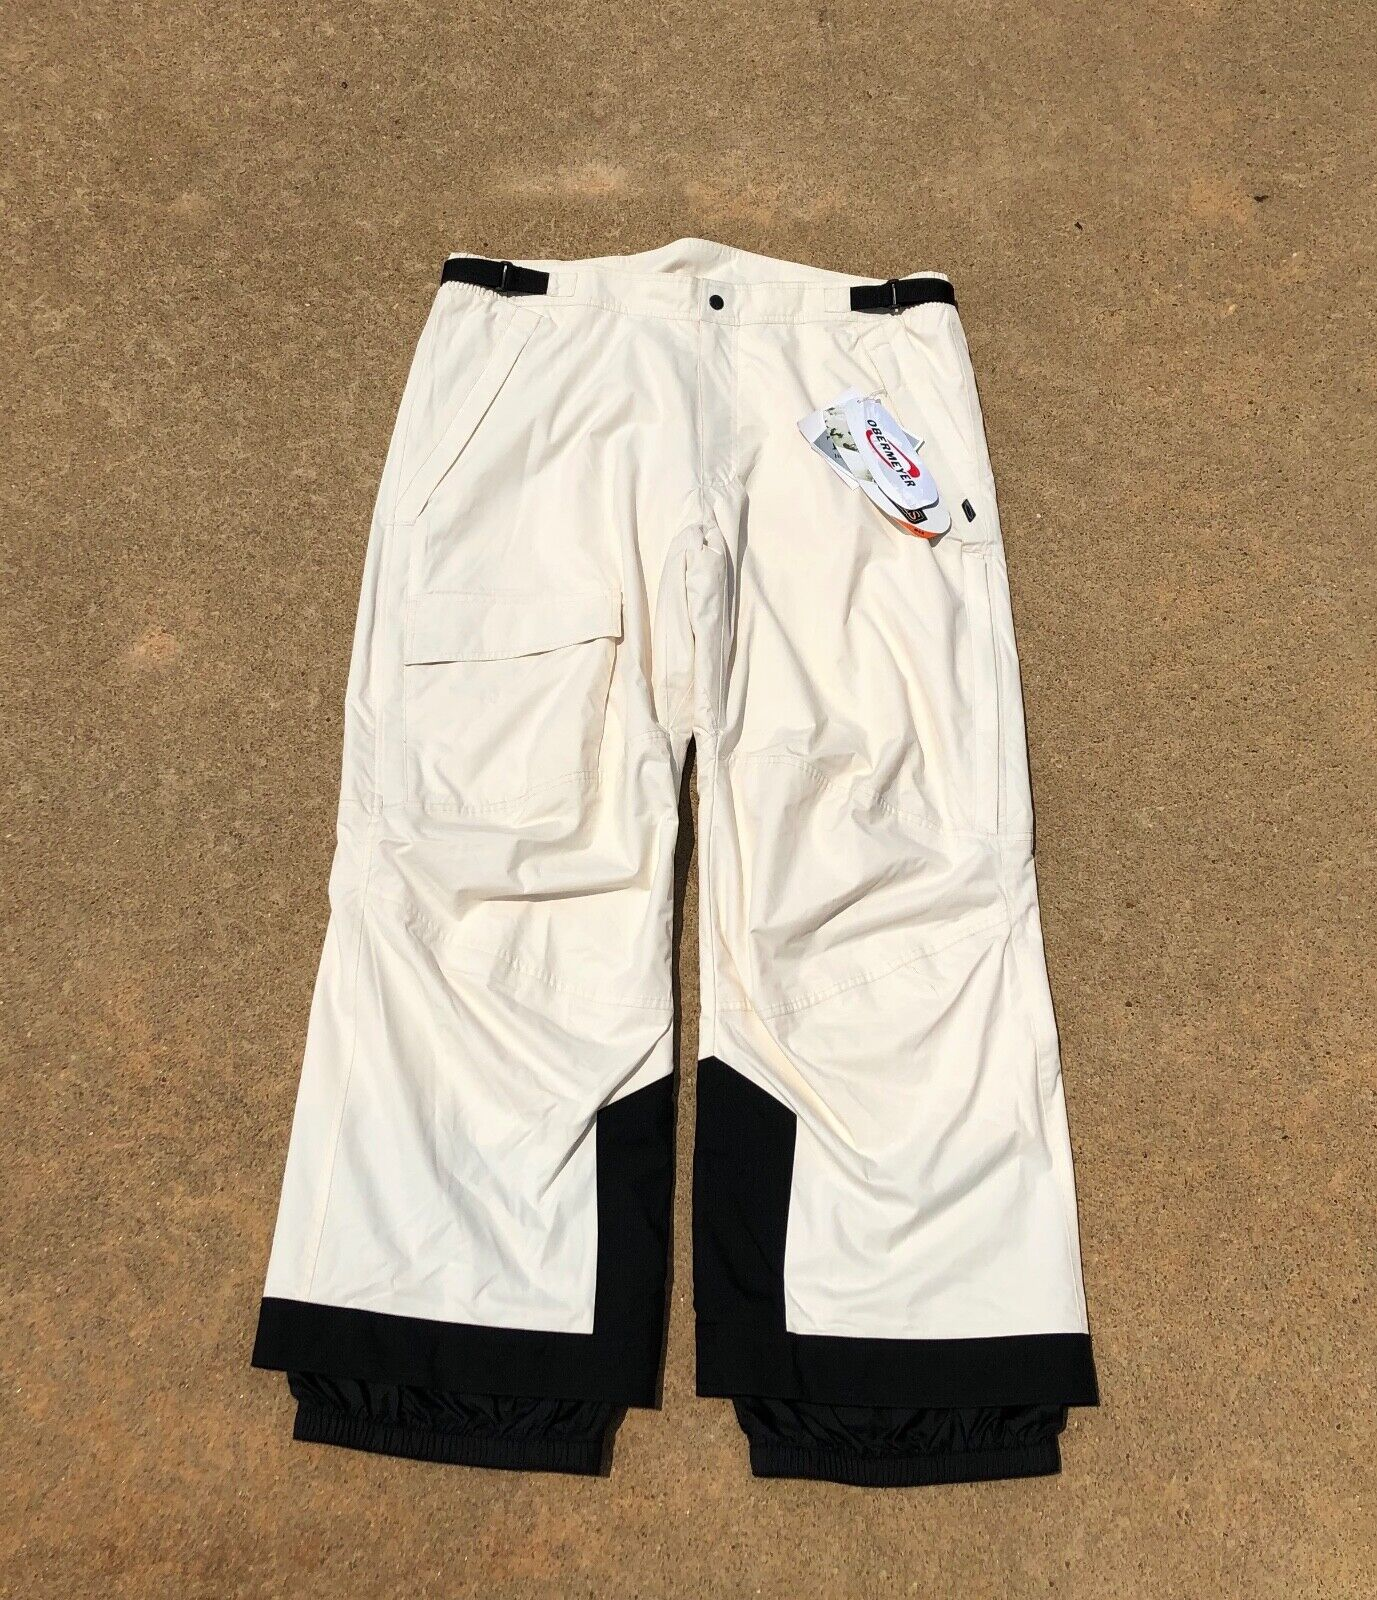 NWT Obermeyer AXIS Ski Snowboard  Saguaro Pants Teflon HT Sz S, Ss, XL, & XLS  welcome to buy